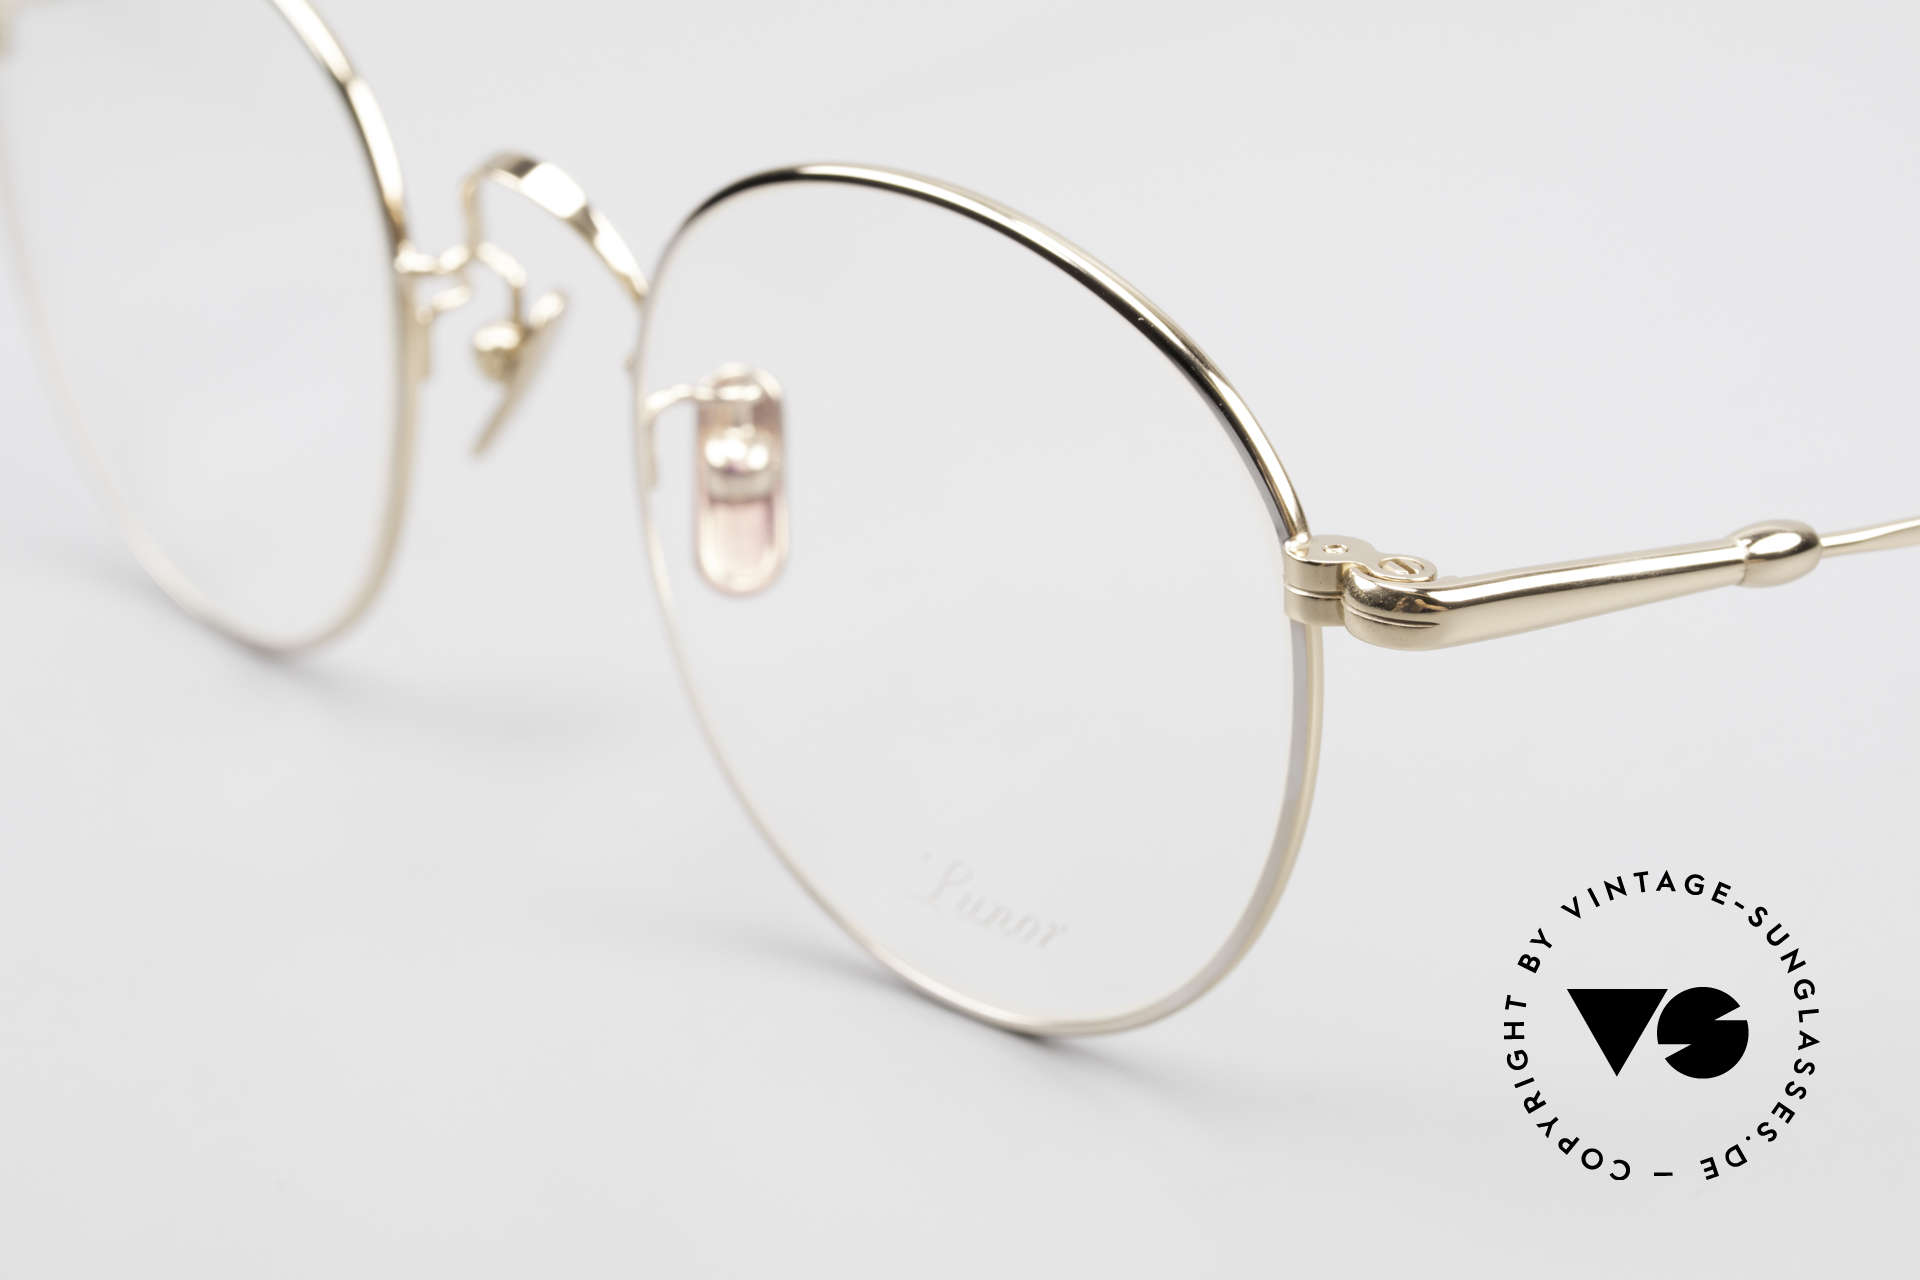 Lunor V 111 Men's Panto Frame Gold Plated, from the 2015's collection, but in a well-known quality, Made for Men